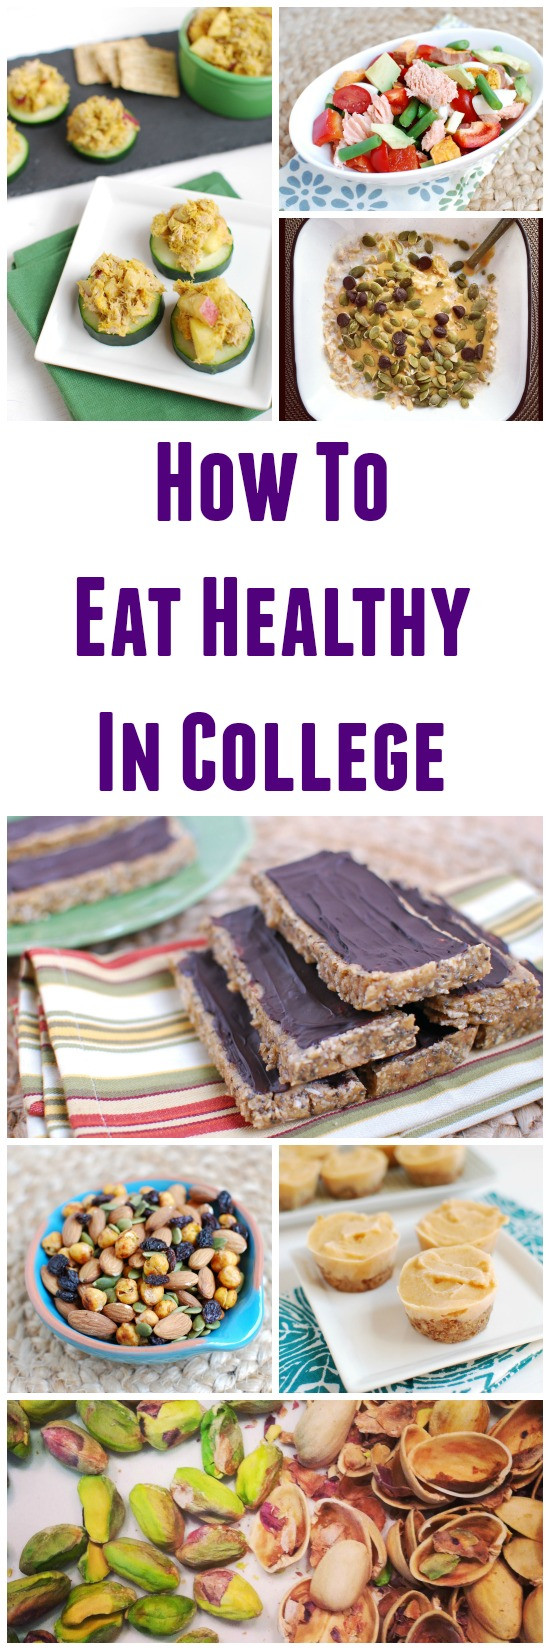 Healthy College Snacks For The Dorm  How to Eat Healthy in College